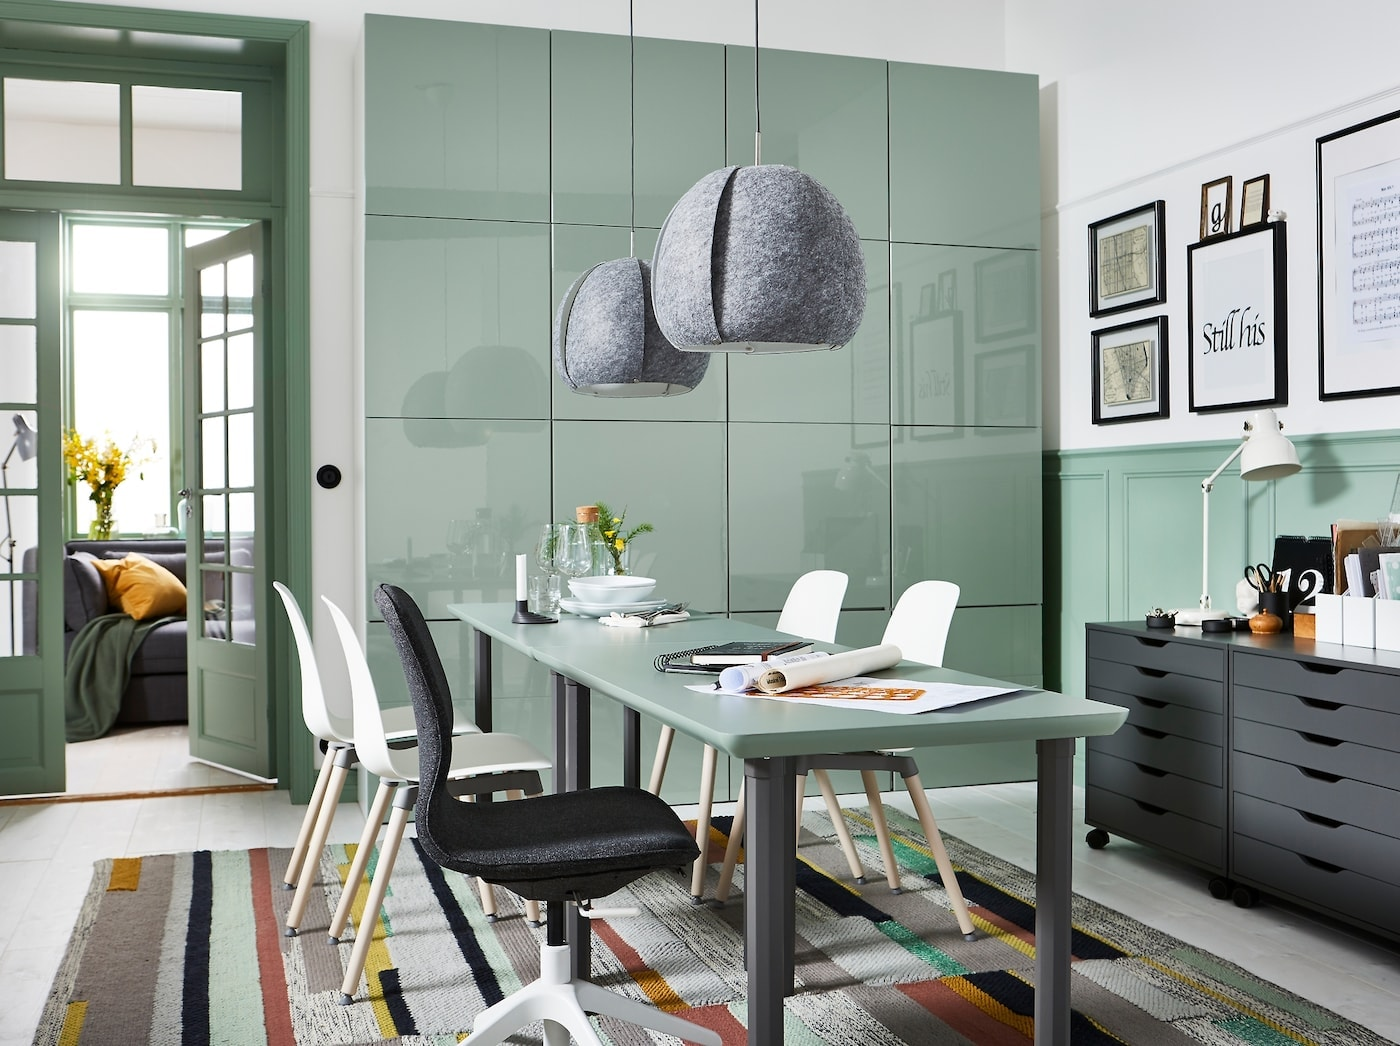 Home Office Design Ideas Gallery - IKEA